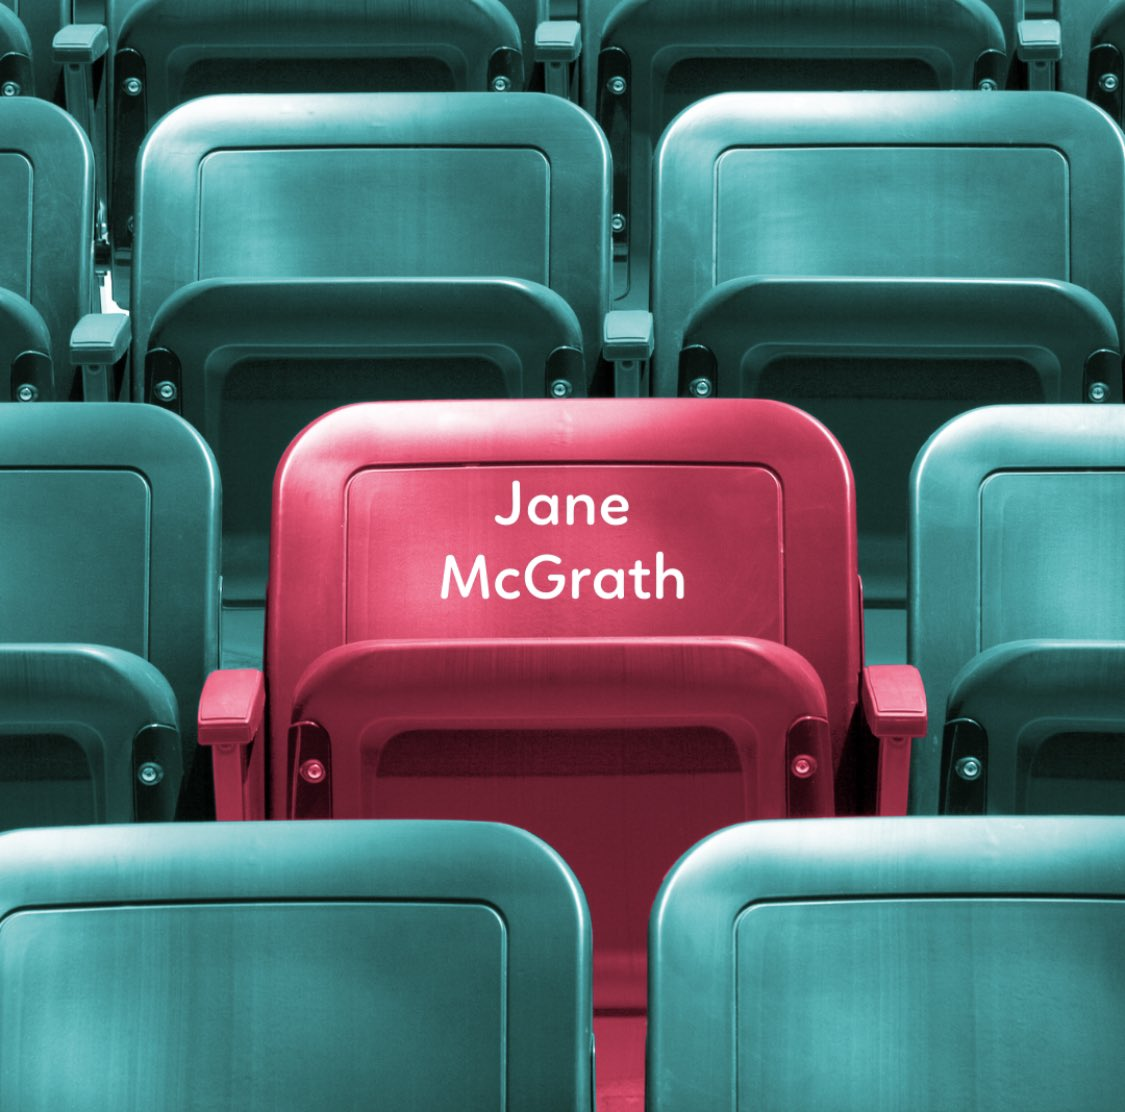 The smallest crowd ever at the Pink Test due to Covid, but the most ever raised !!! 🥳 Thank you to everyone that has purchased a @McGrathFdn virtual pink seat. My mate Jane would be SO grateful 🙏🏽💕